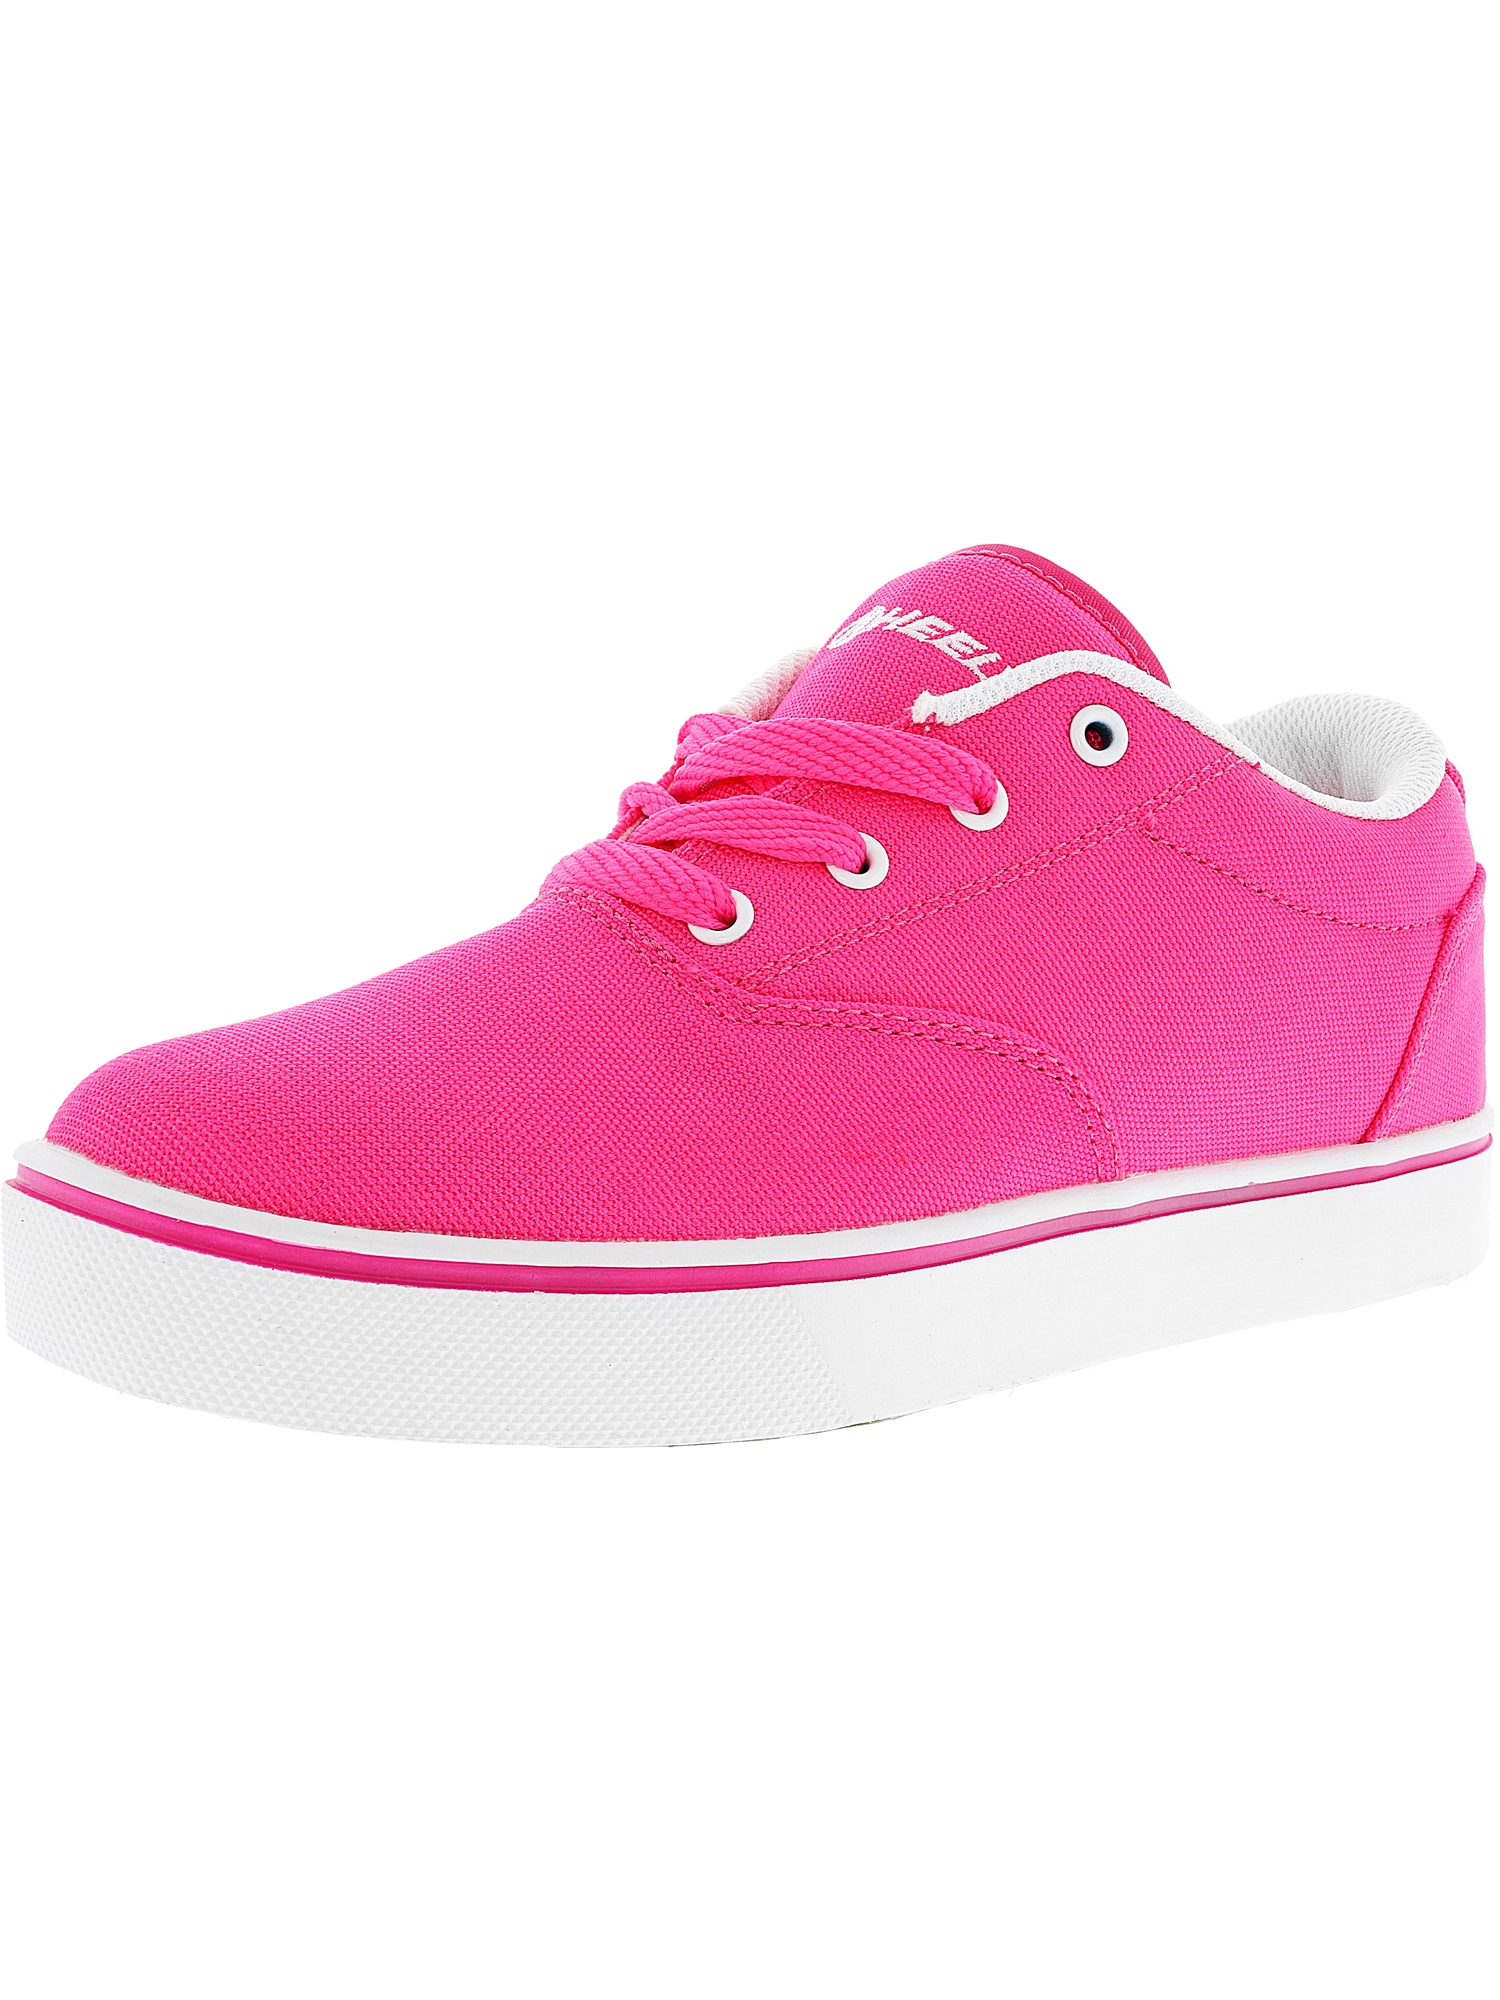 Heelys Launch Neon Pink Ankle-High